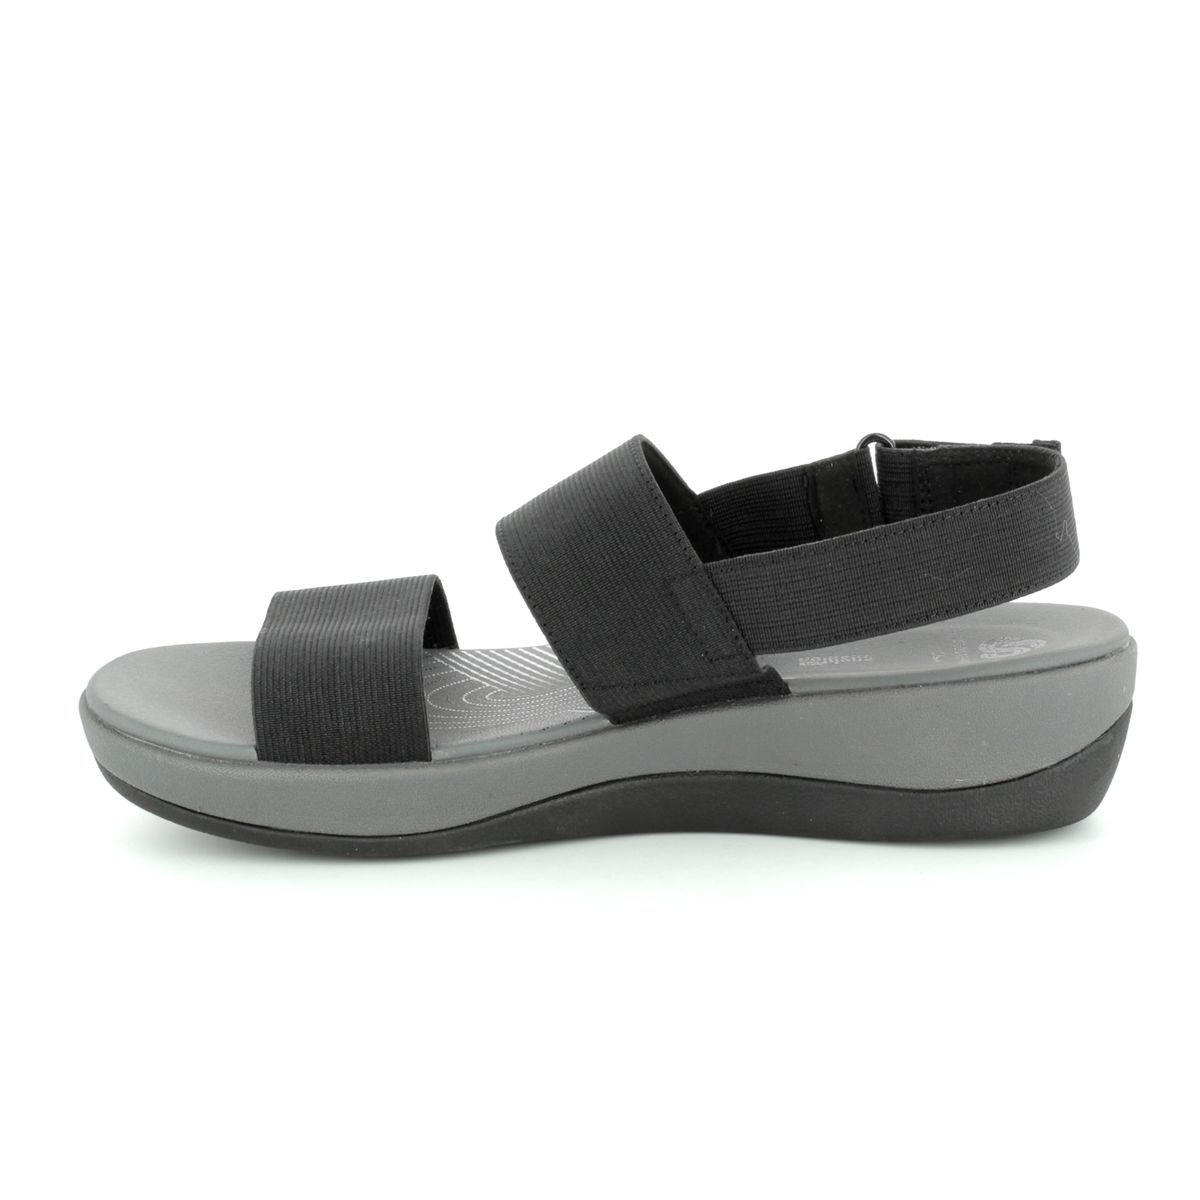 74a4ba511e5b Clarks Sandals - Black - 2560 34D ARLA JACORY